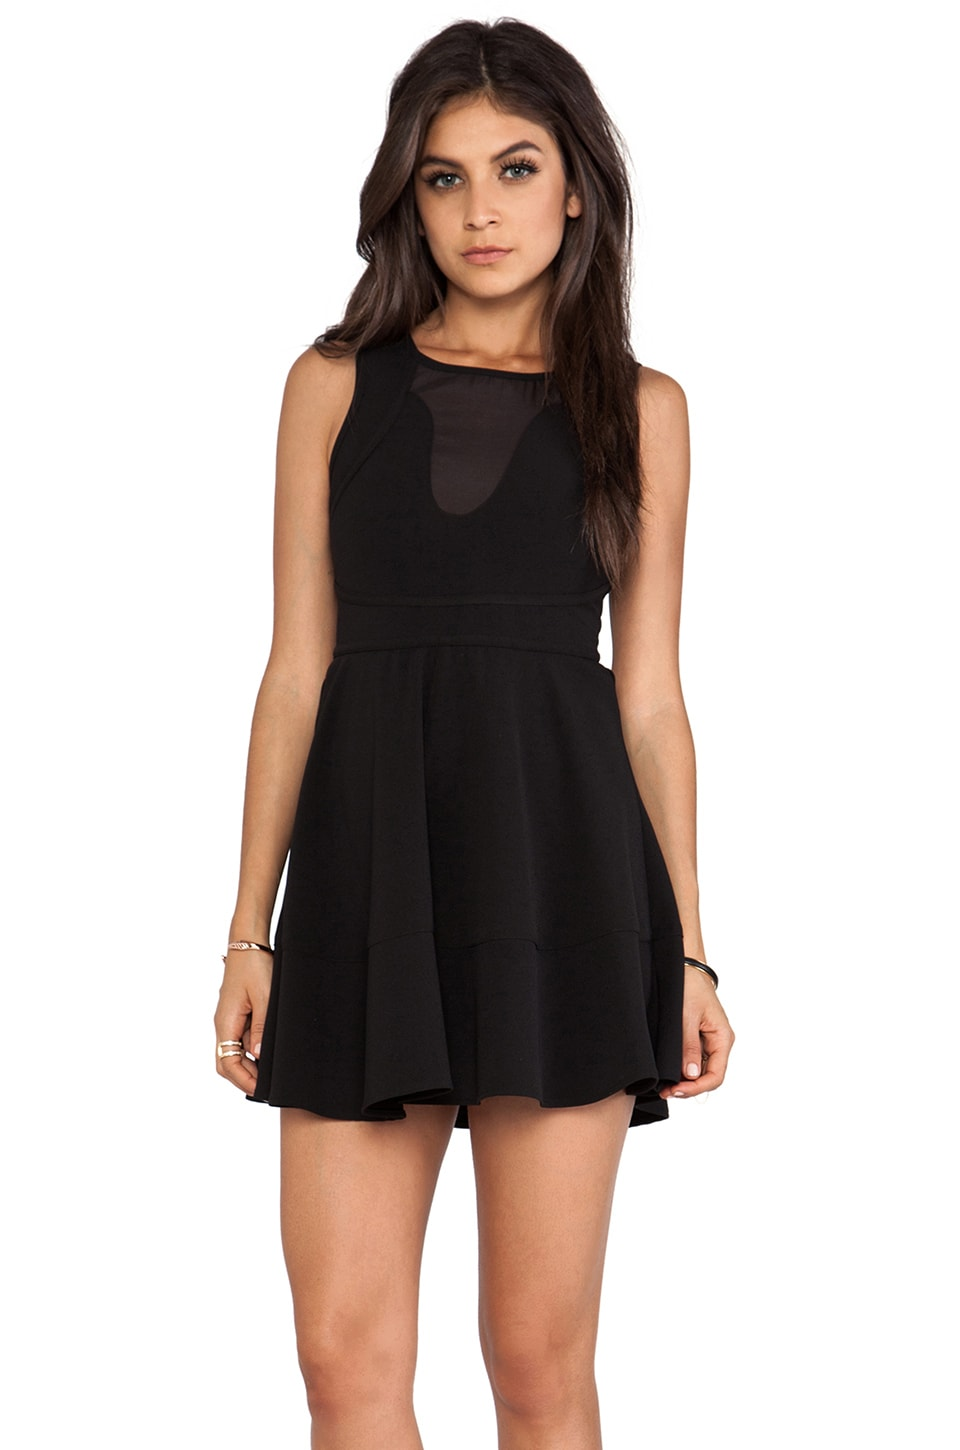 Wish Magnetize Mini Dress in Black